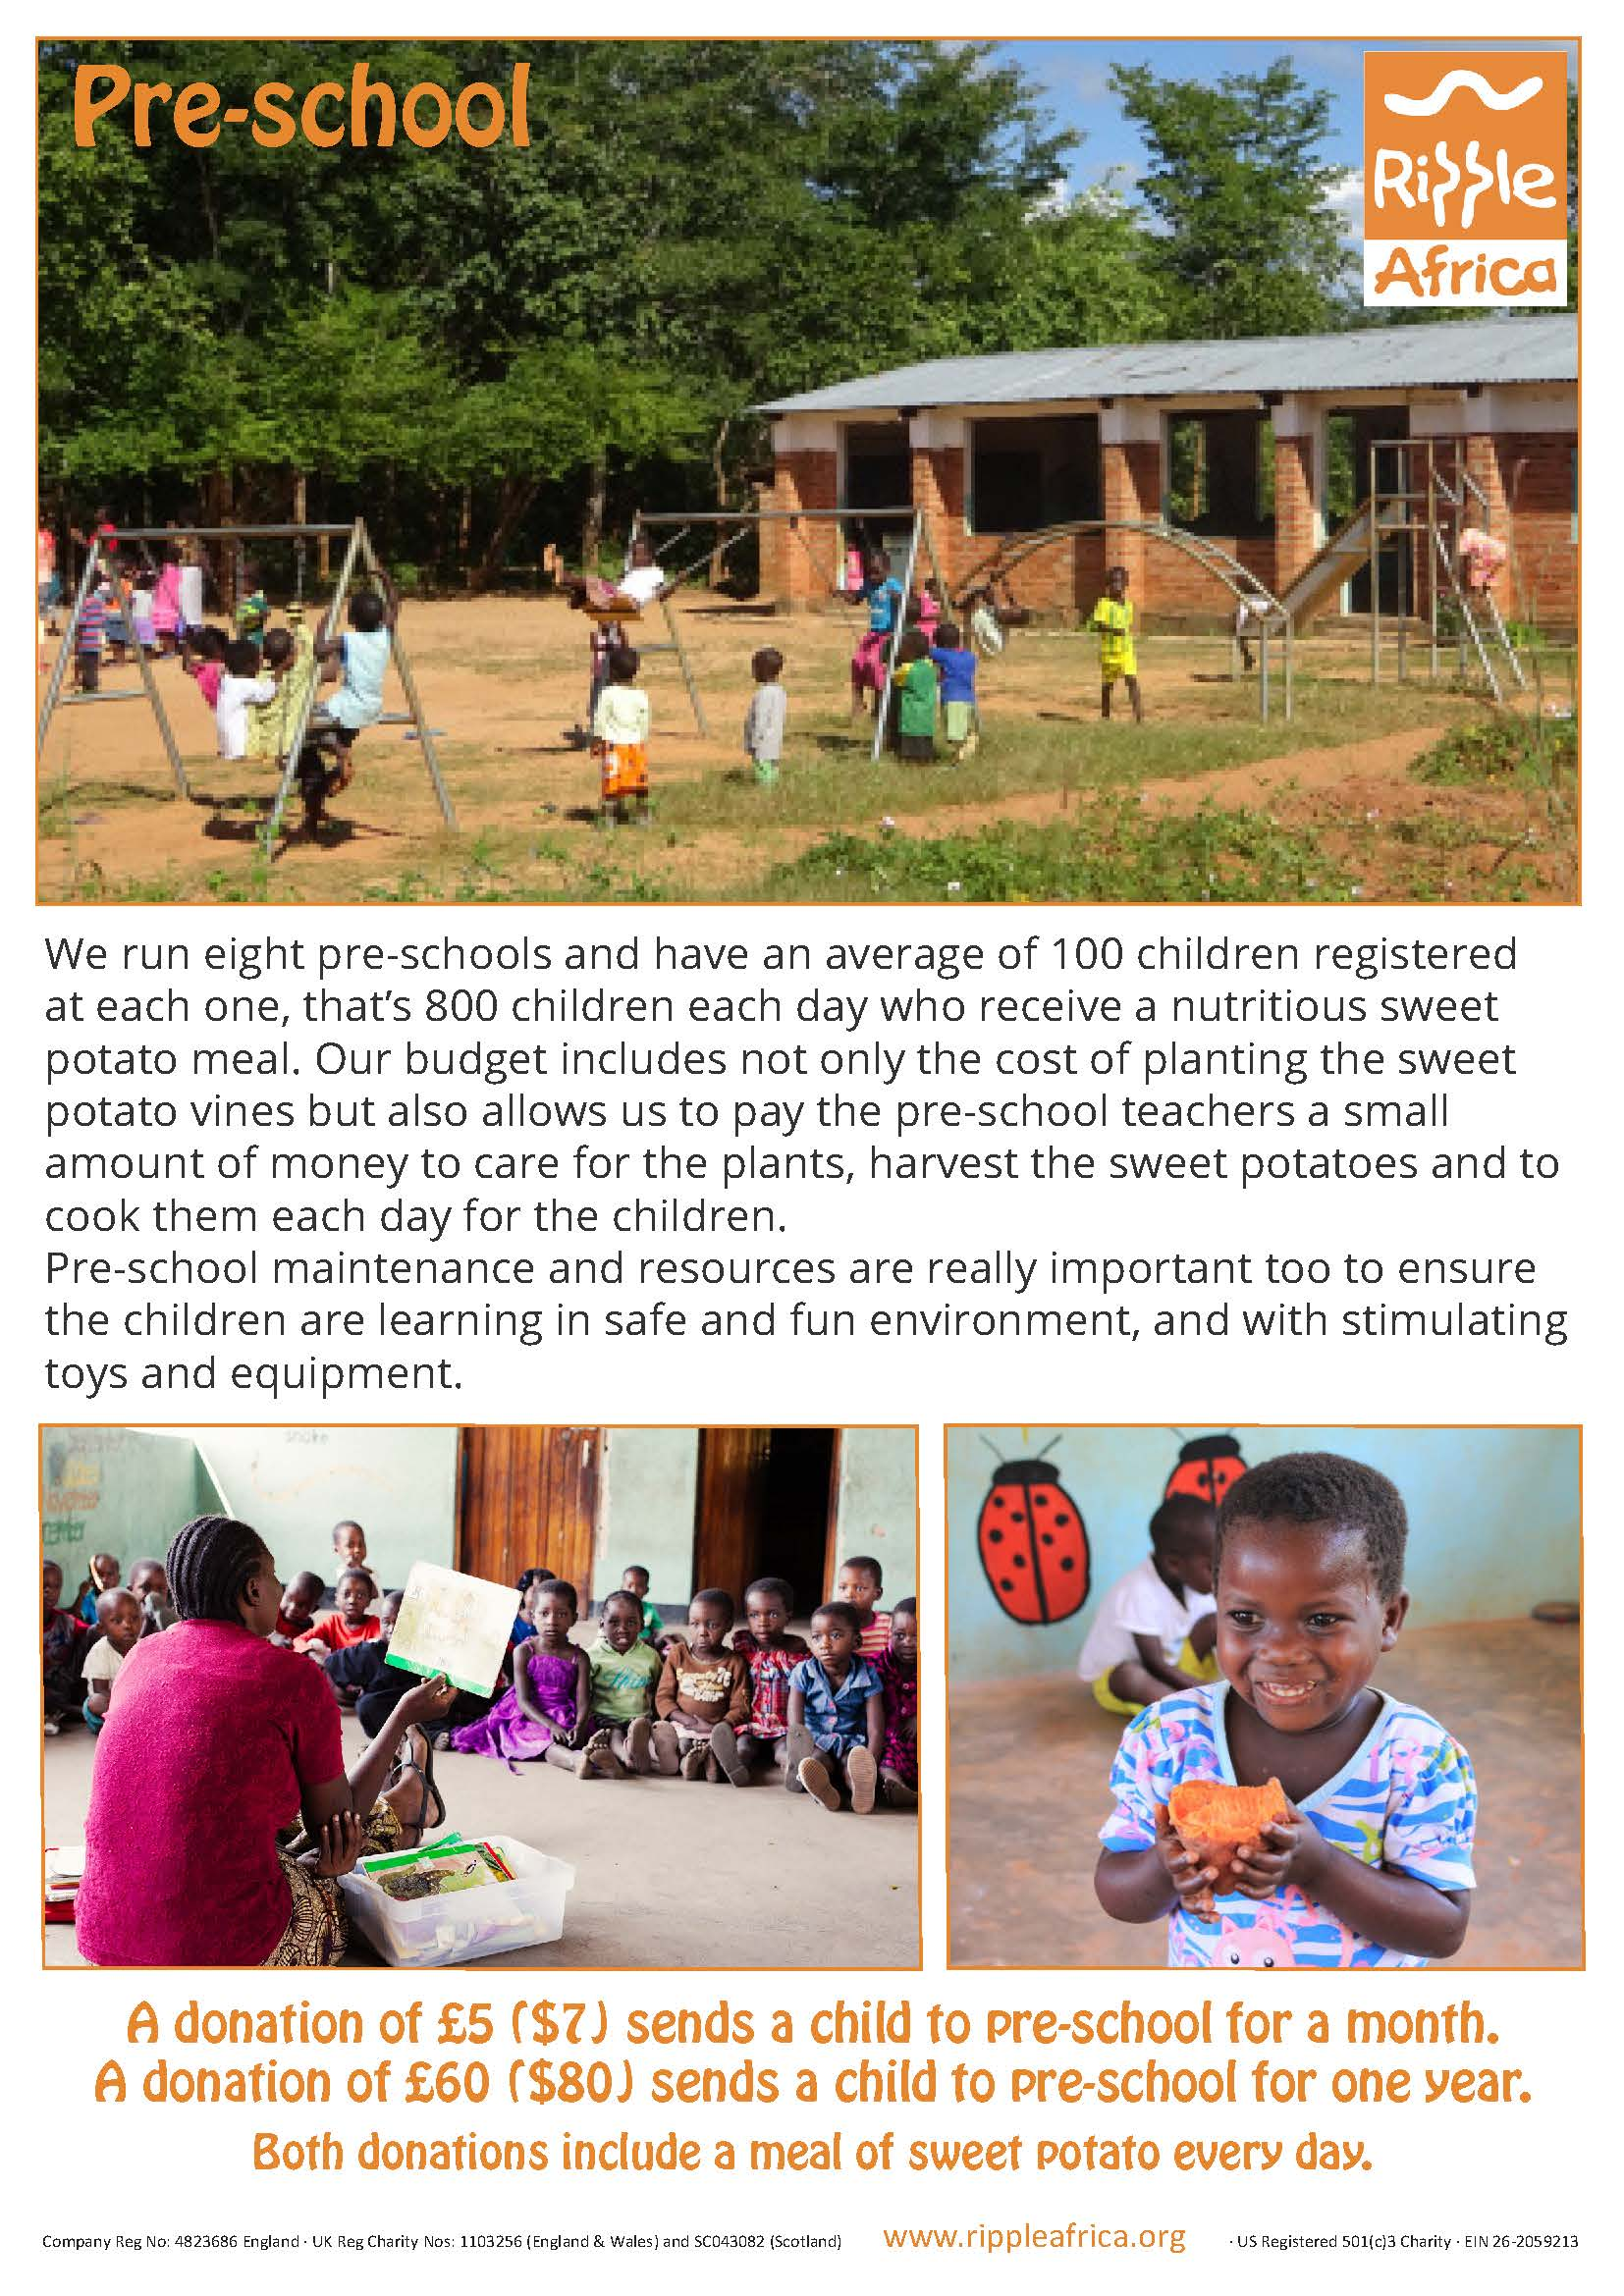 Donating to a pre-school in Africa